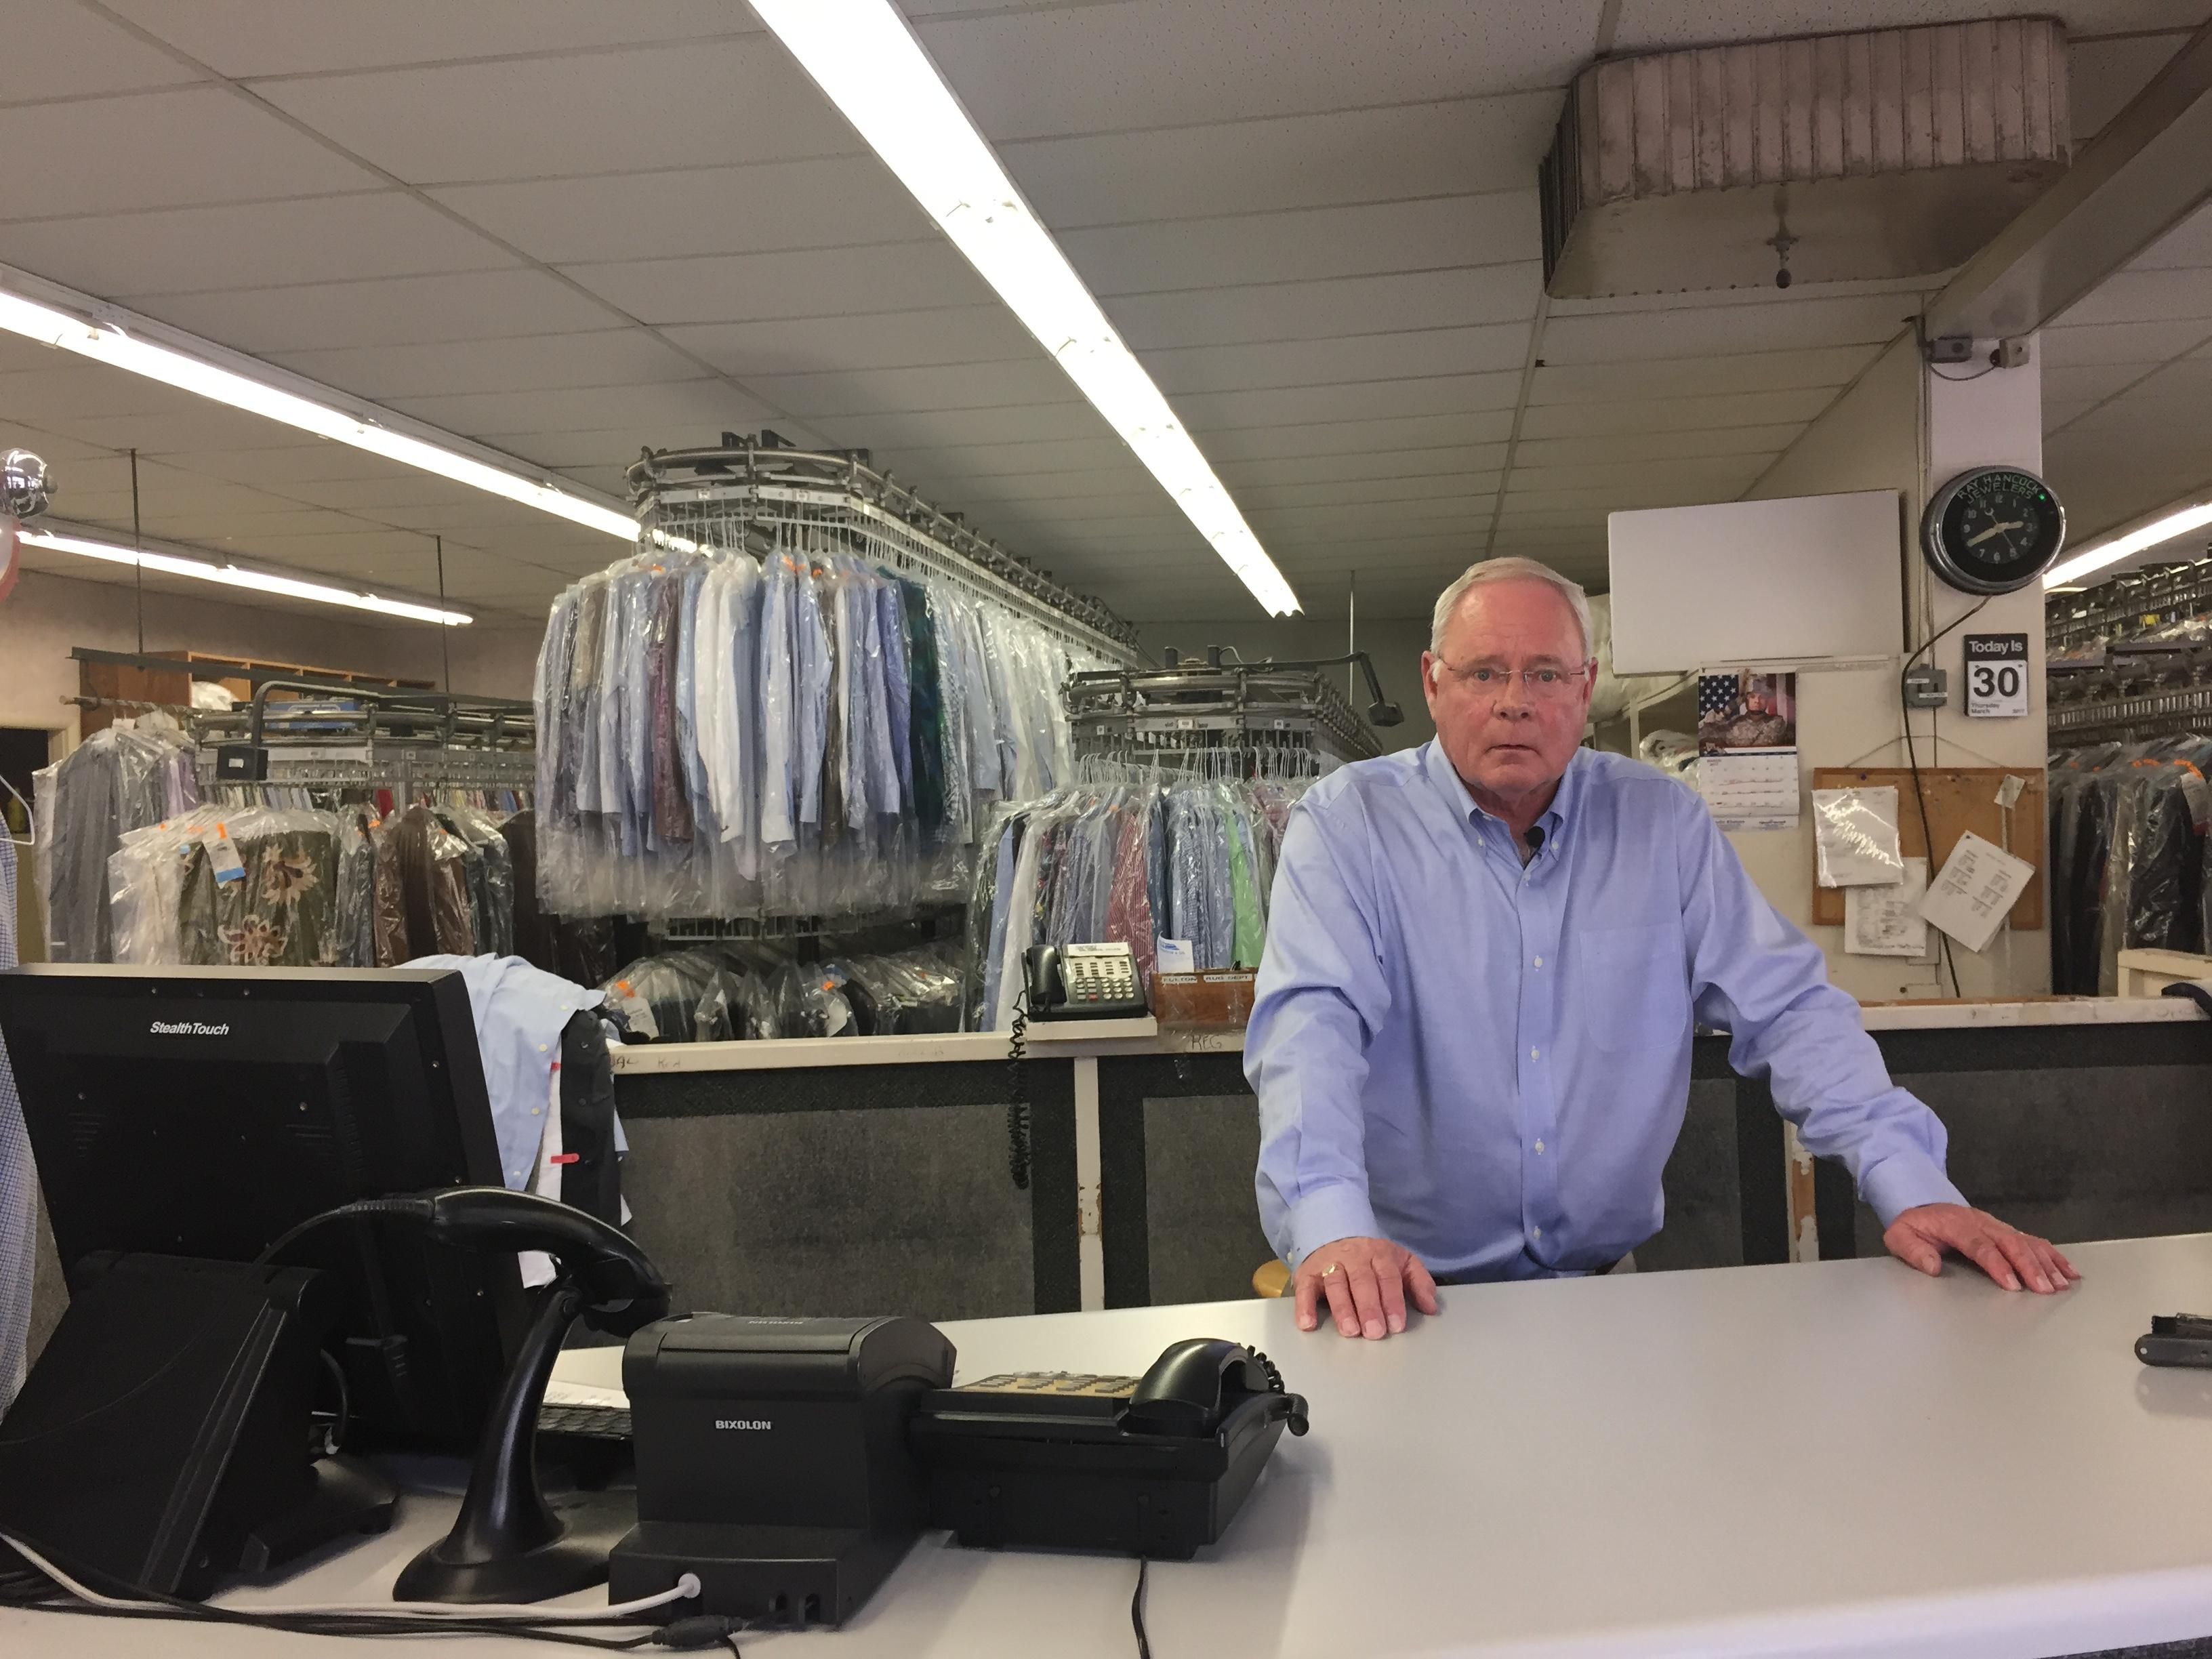 At Asheville Cleaners, Gut Roberts and his family have been a fixture on Merrimon Avenue since 1938. (Photo credit: WLOS staff)